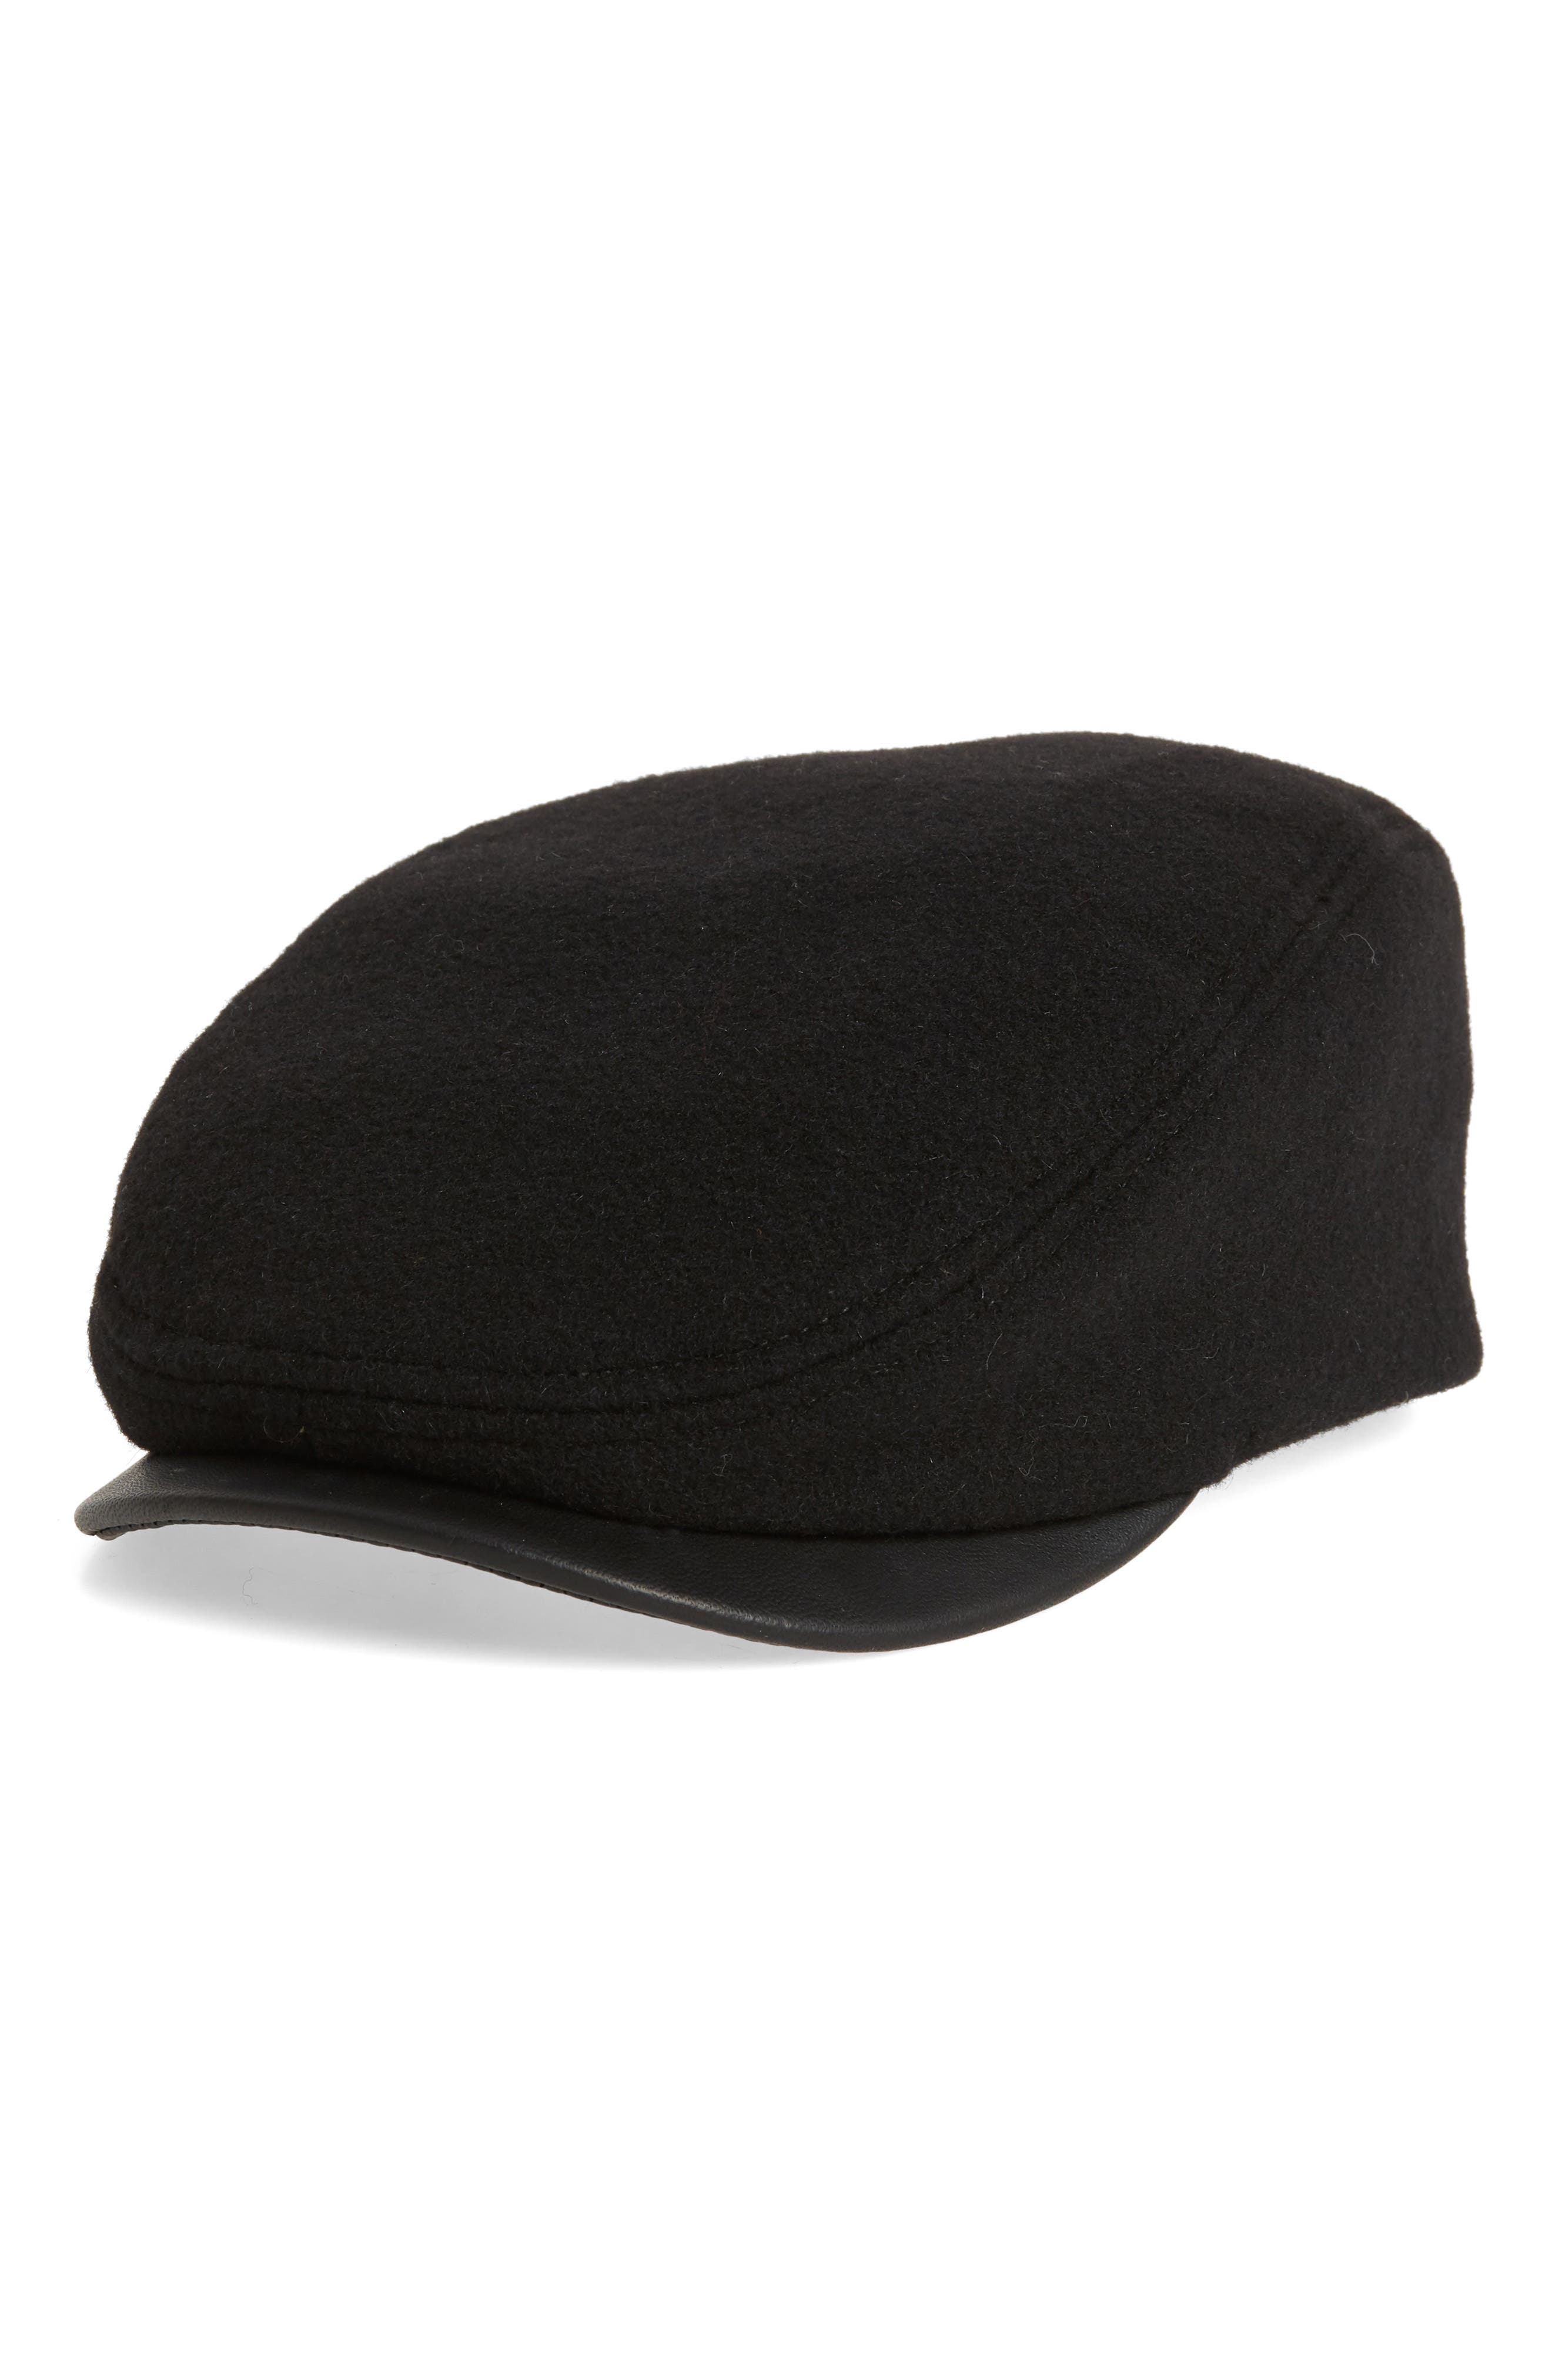 Melton Ivy Cap with Leather Visor,                             Main thumbnail 1, color,                             001